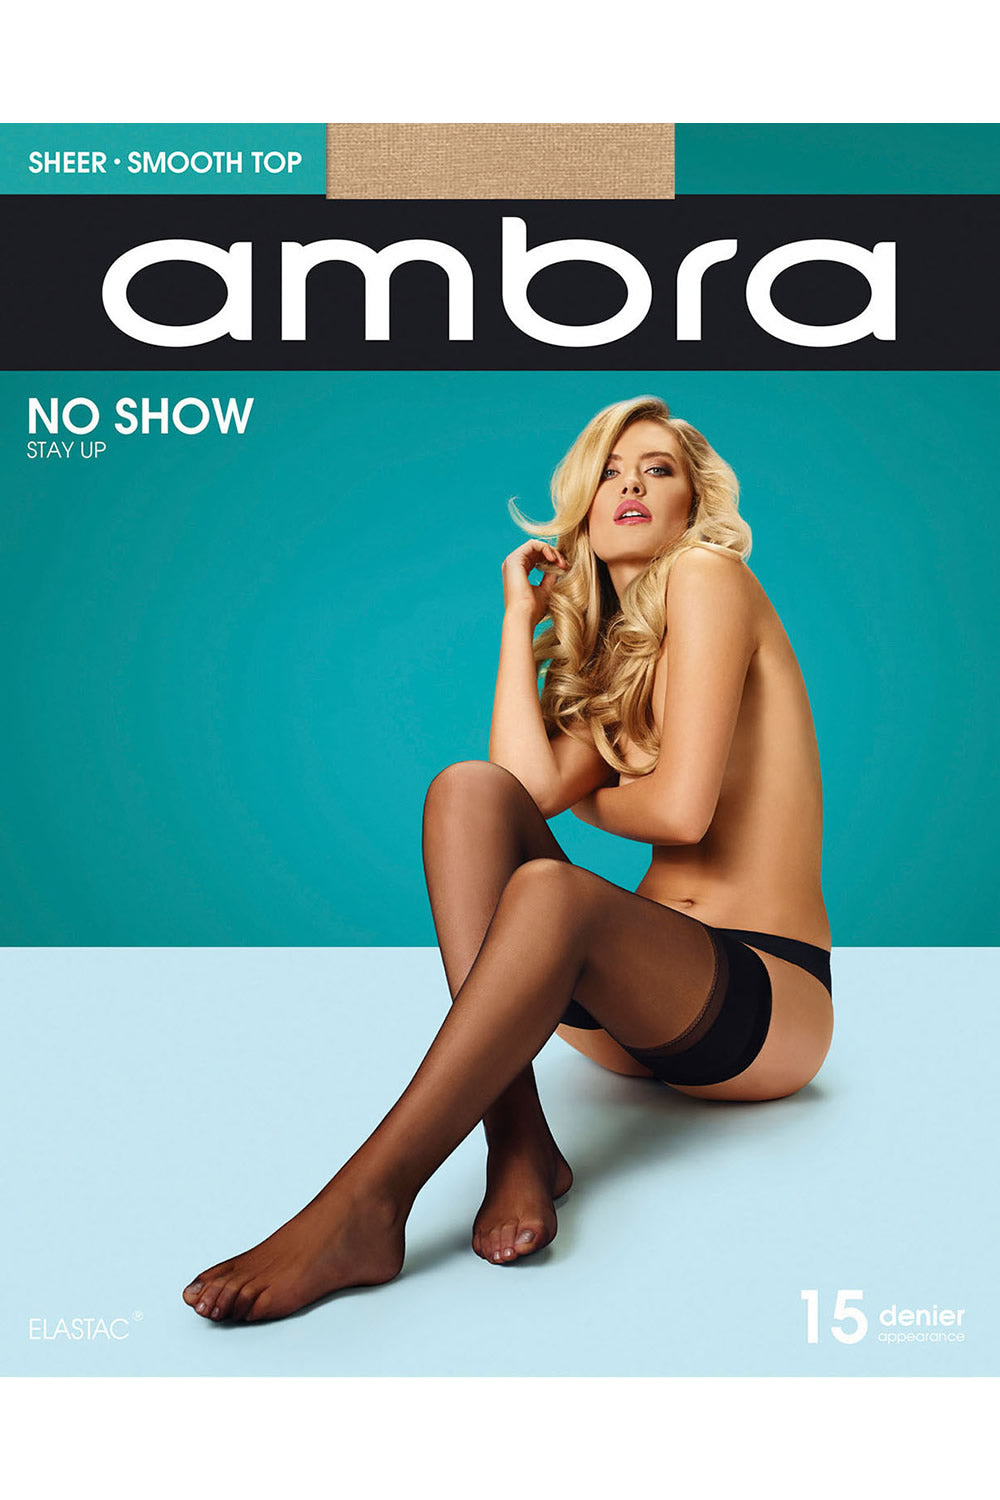 Ambra Sheer Smooth Top No Show Stay Up Pantyhose